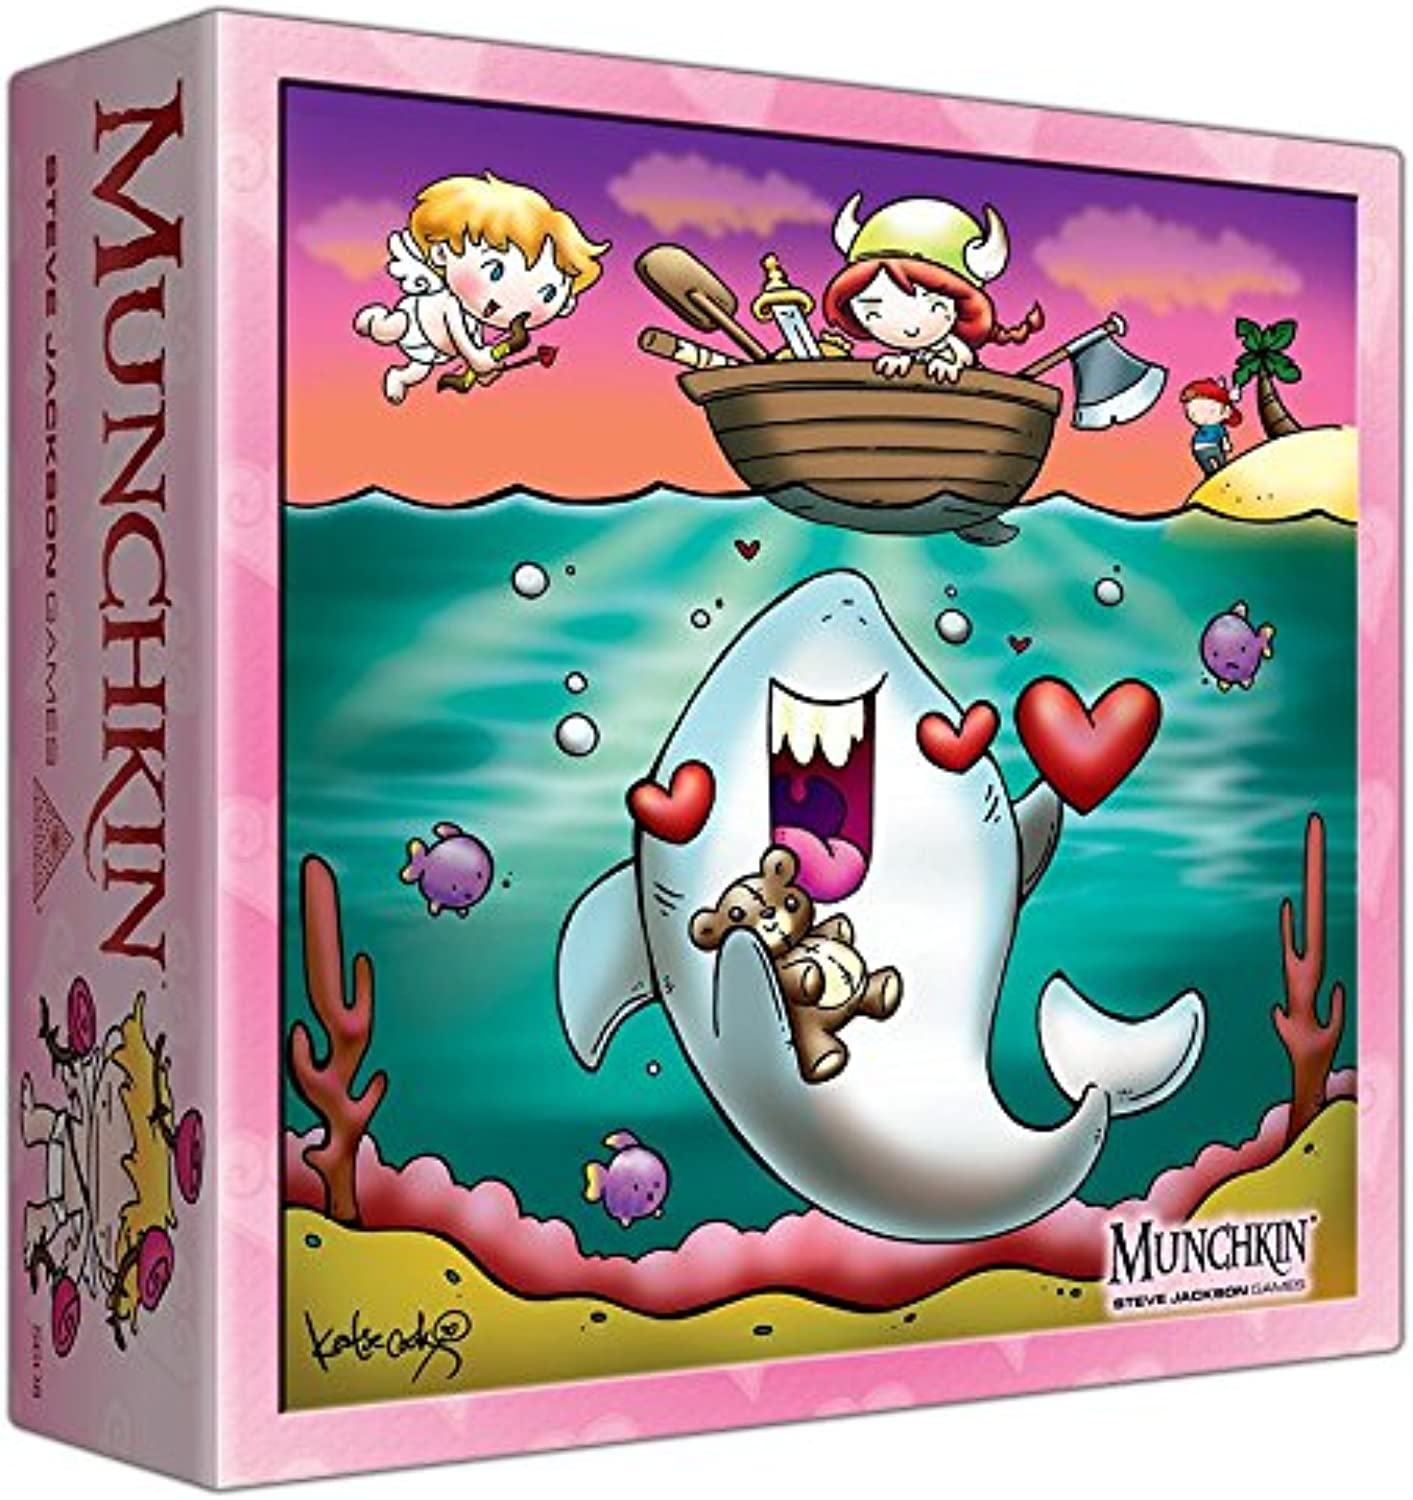 Munchkin Monster Storage Box  Valentine's Day